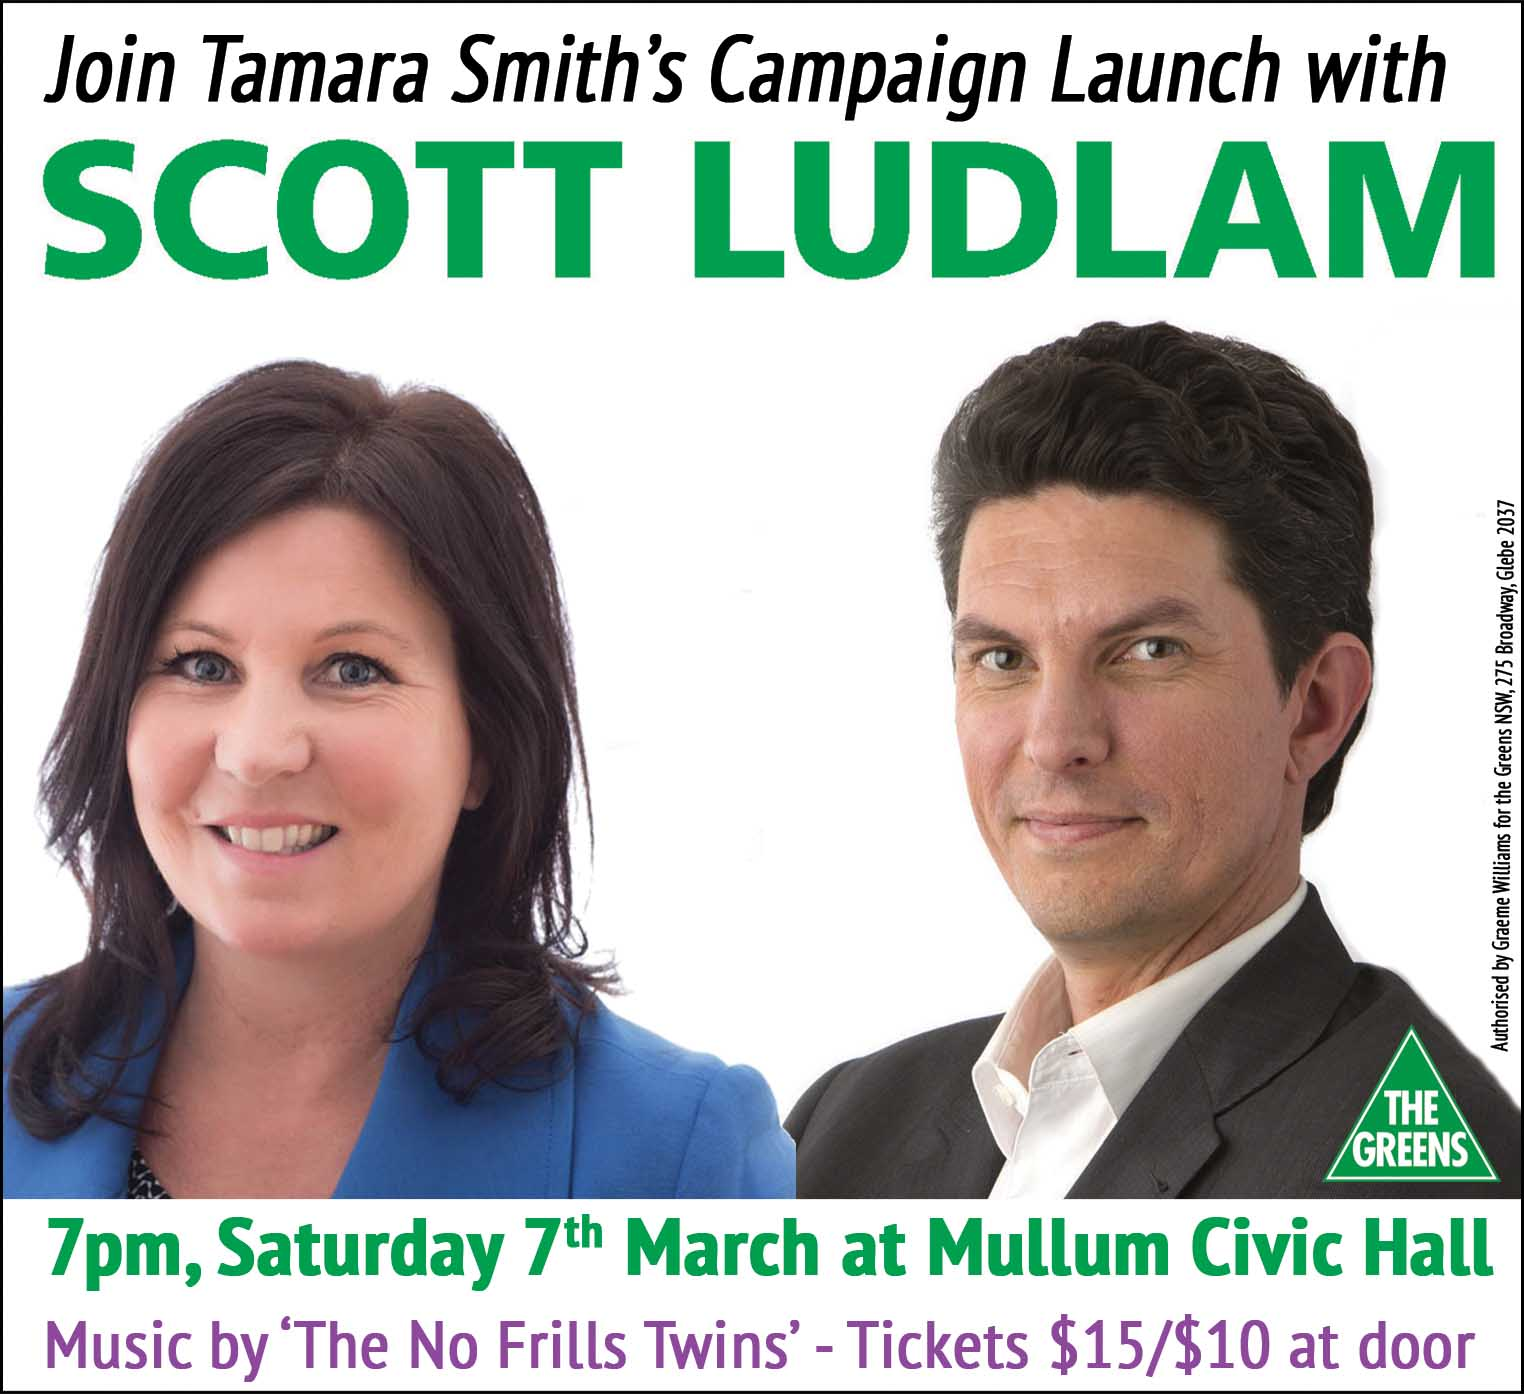 Scott_and_Tamara_Campaign_Launch_Advert.jpg